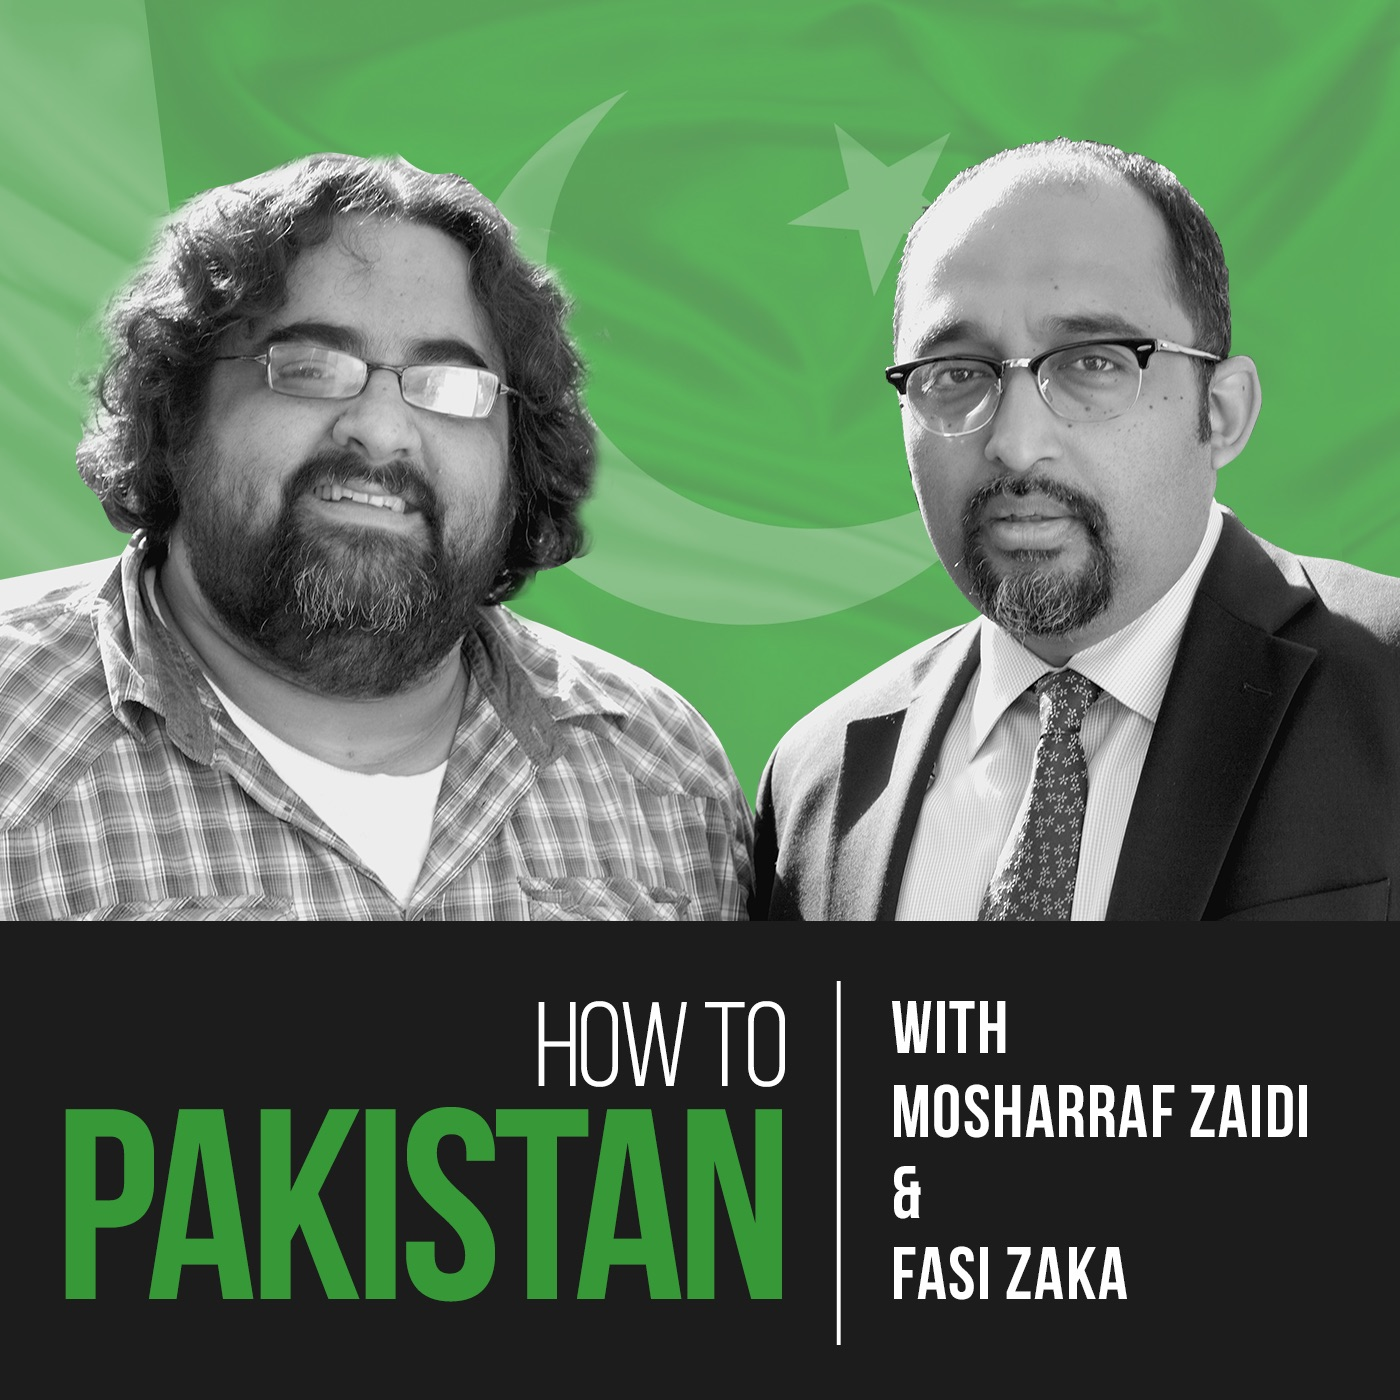 How to Pakistan